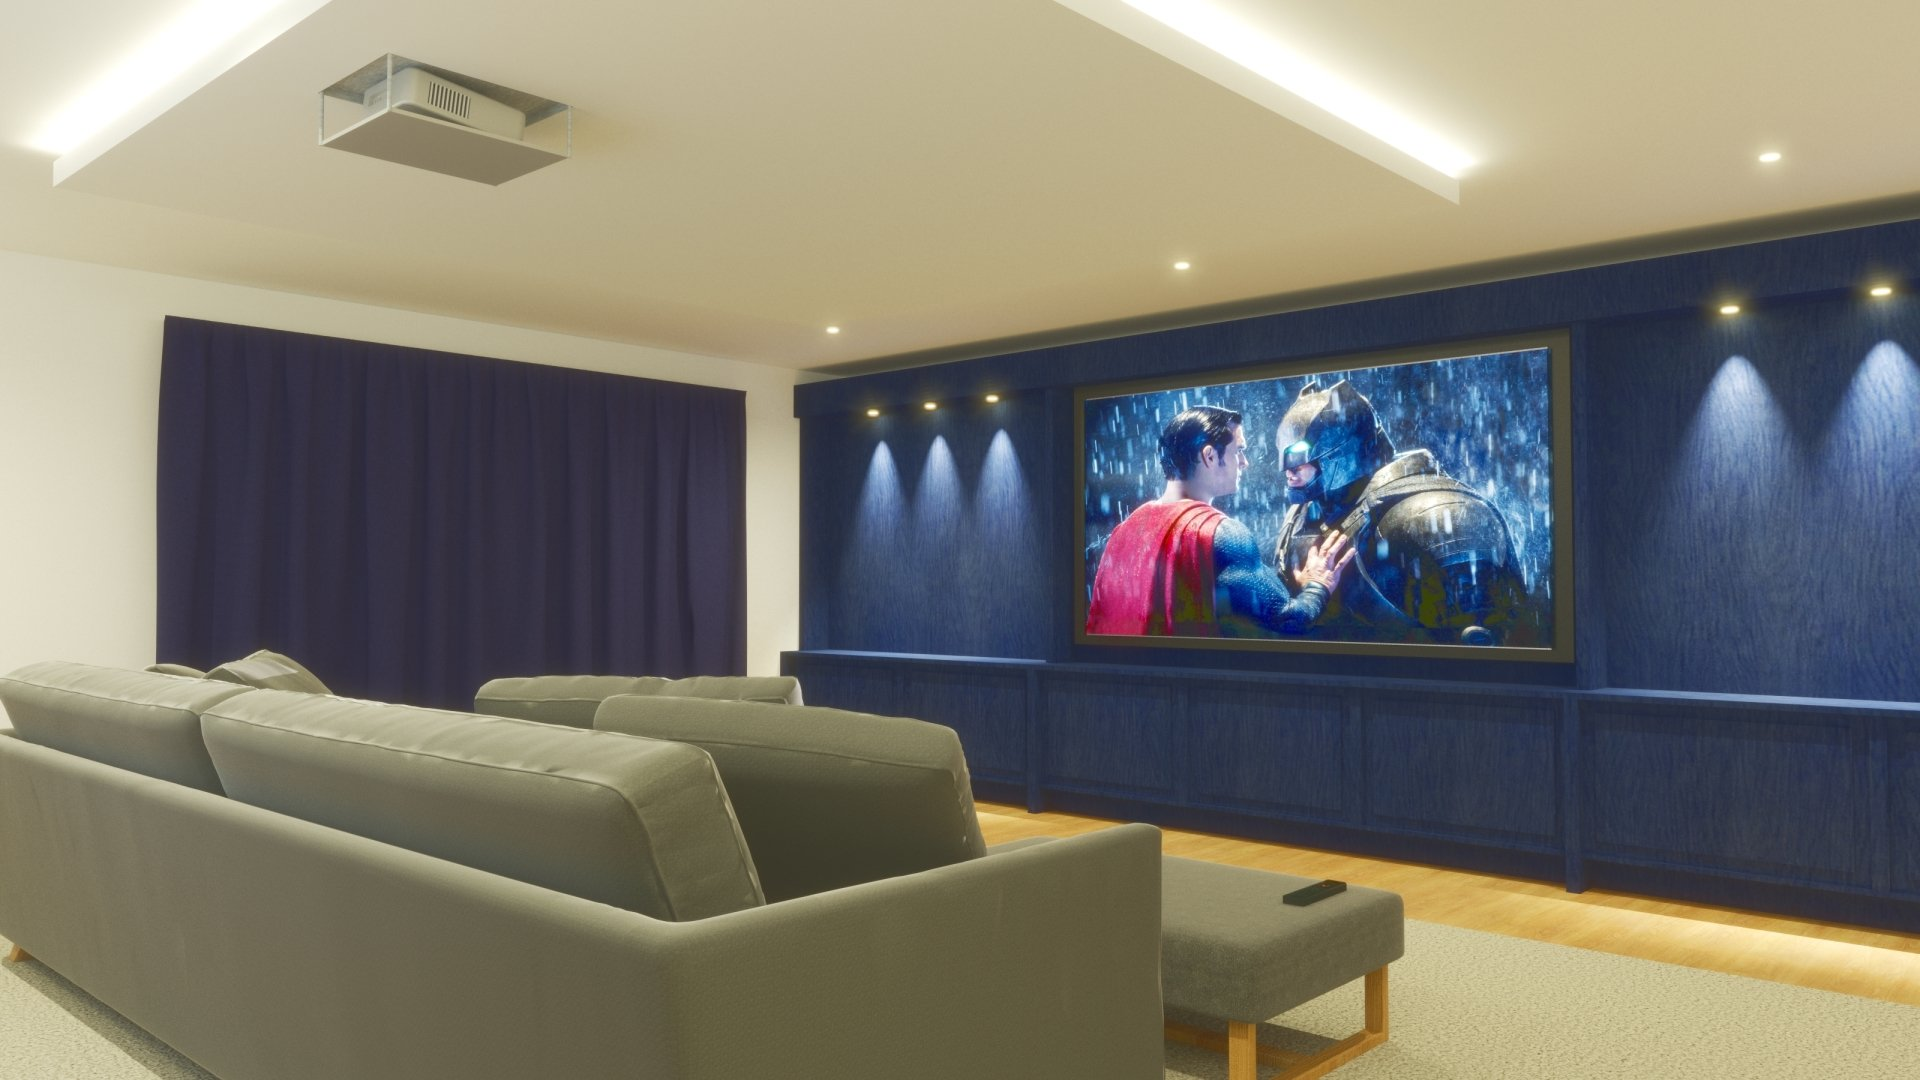 Lighting Solutions With Lutron Rako And Control4 From New